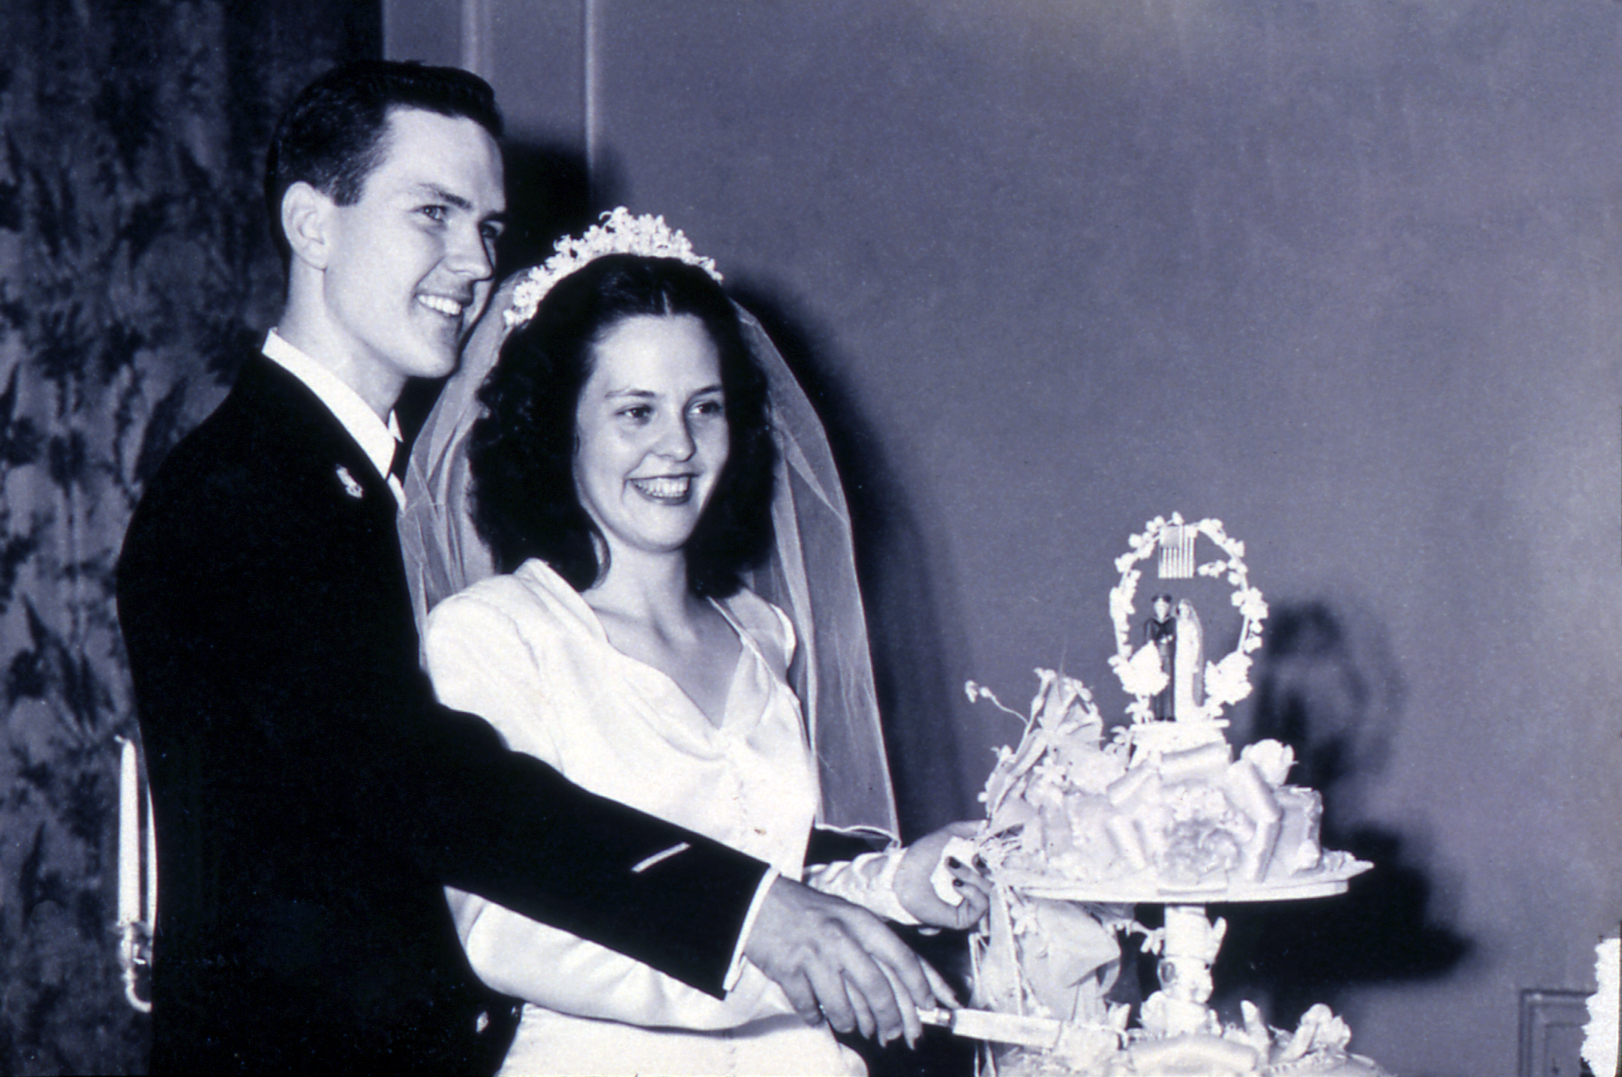 Russell and Dantzel Nelson cut their wedding cake on Aug. 31, 1945.